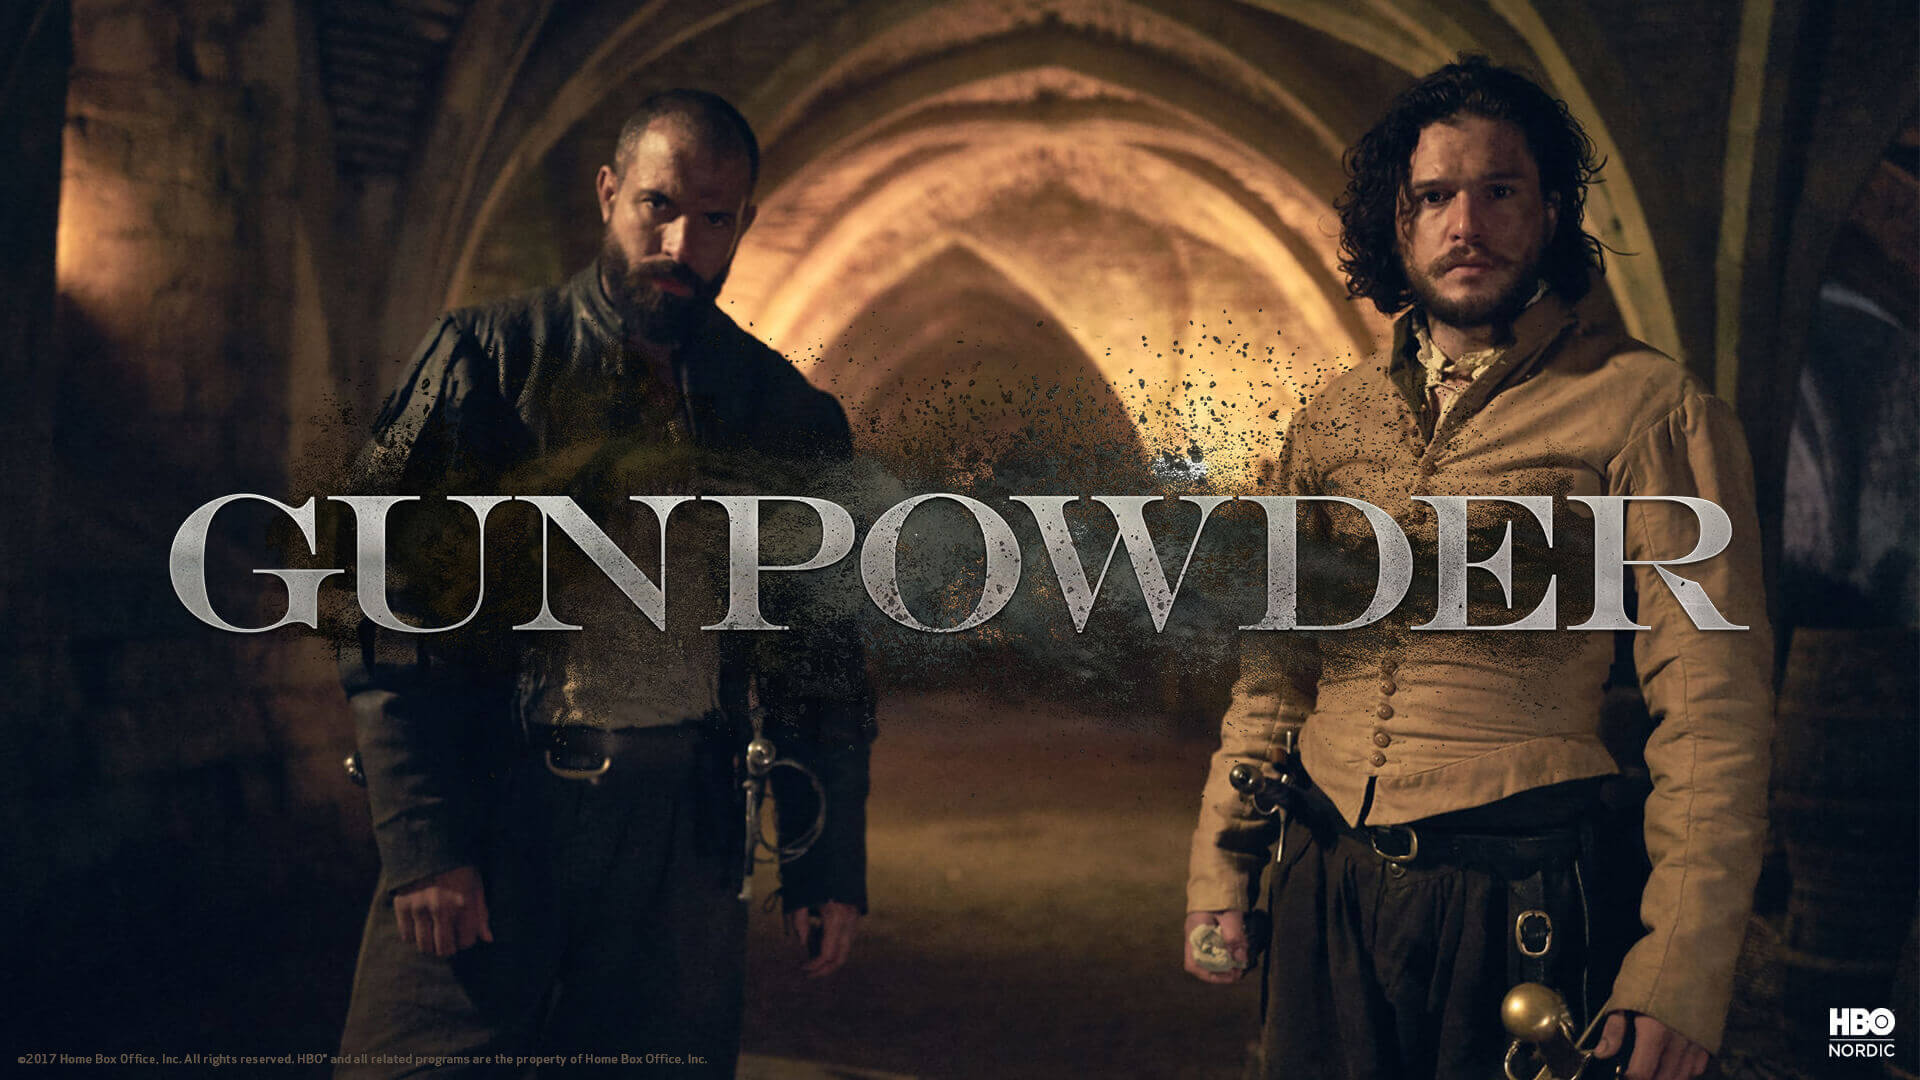 RiksTV_HBO_gunpowder_1920x1080